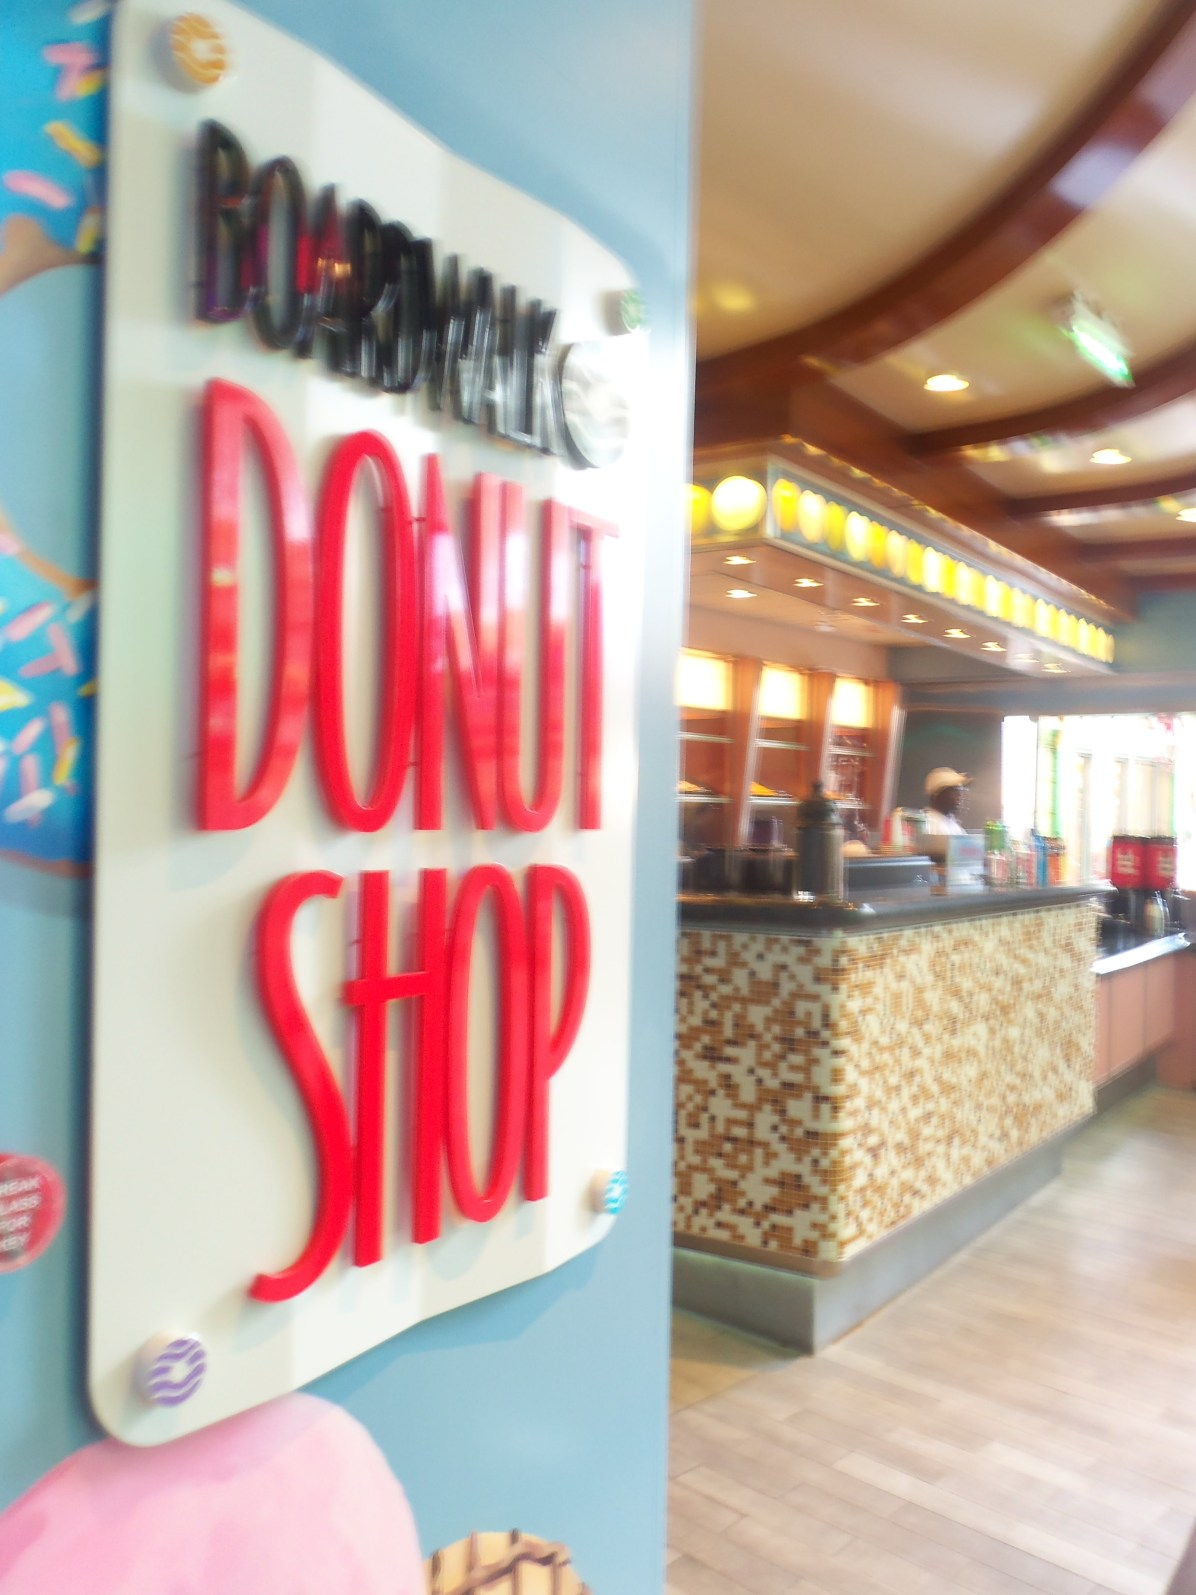 Boardwalk Donut Shop